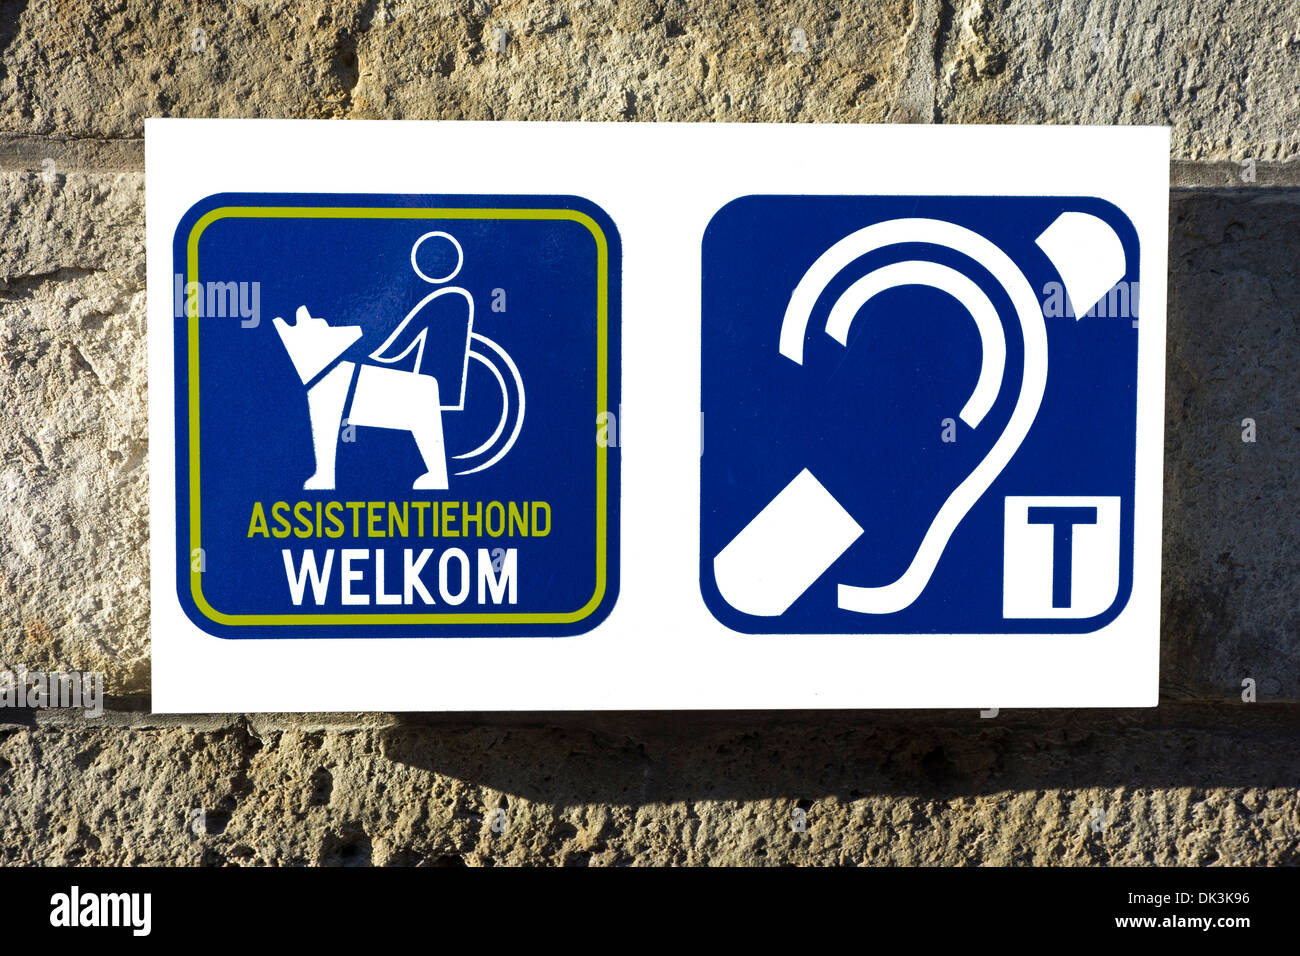 Pictograms welcoming wheelchair users with assistance dogs and hearing impaired persons to access public building - Stock Image